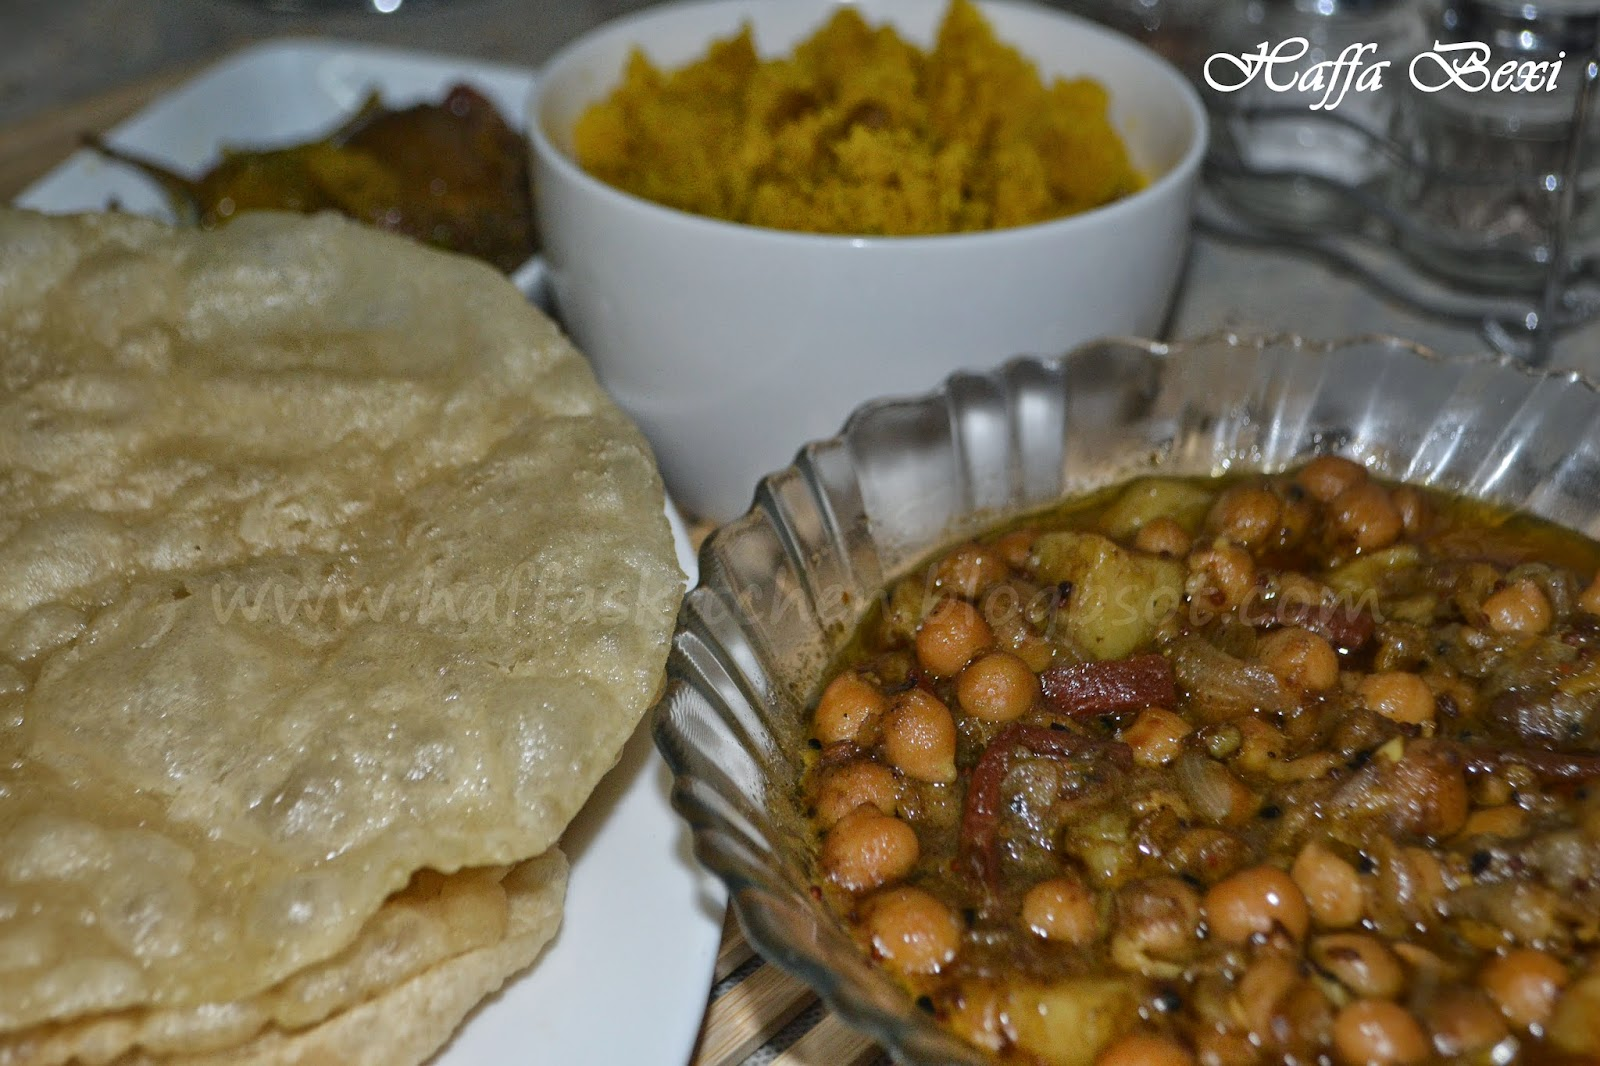 halwa puri recipe| halwa puri cholay recipe| Traditional pakistani breakfast recipe| Indian breakfast recipe| Traditional halwa poori| Halwa Poori bhaajia| how to make halwa puri| halwa poori chana recipe| halwa puri cholay recipe| recipe of halwa|indian halwa recipes|pakistani recipes| halwa poori chana recipe| halwa poori